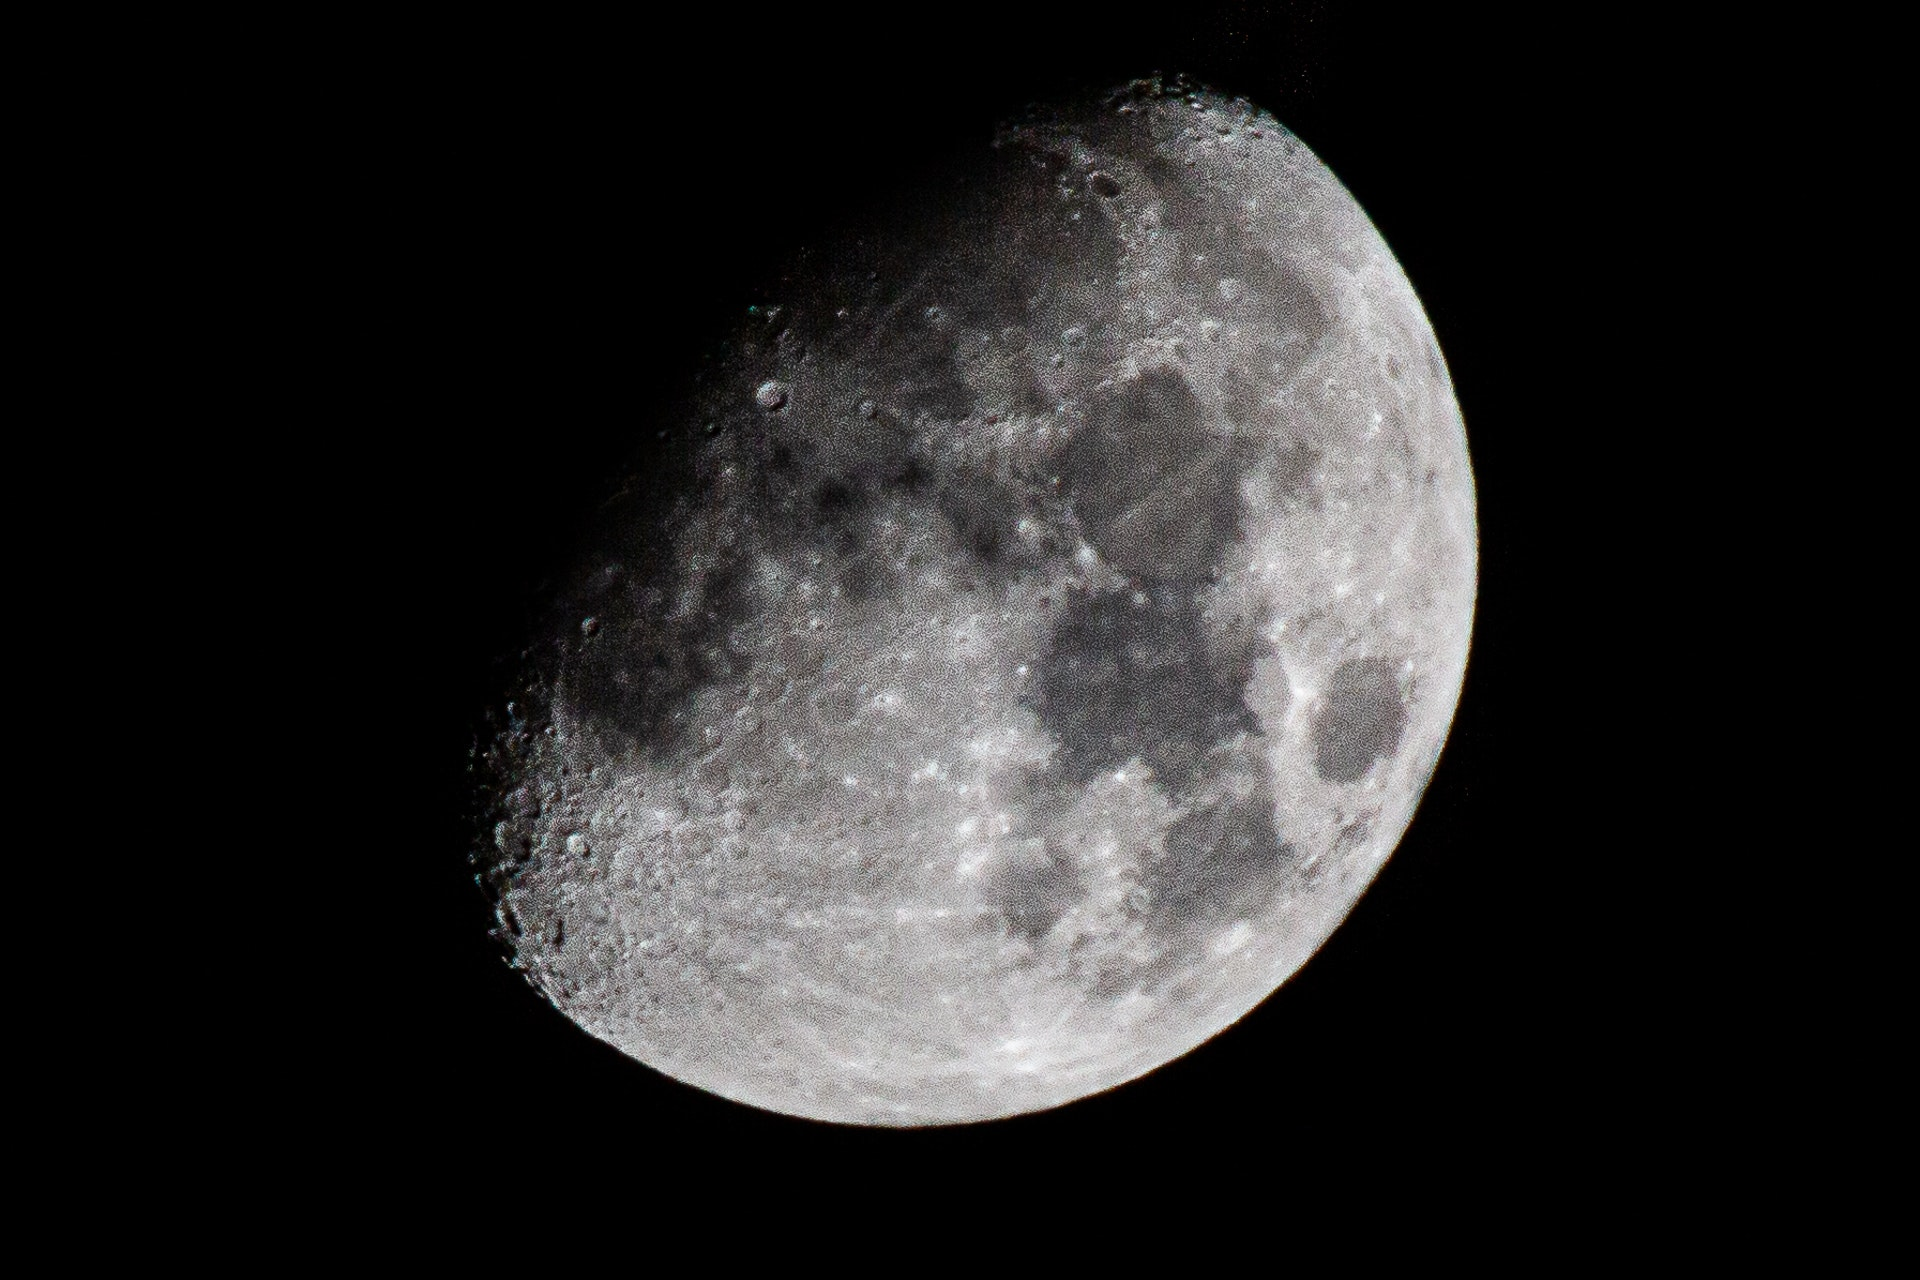 Cropped shot of the moon. f11, 1/500th, ISO 200, 400mm lens with 2x Extender